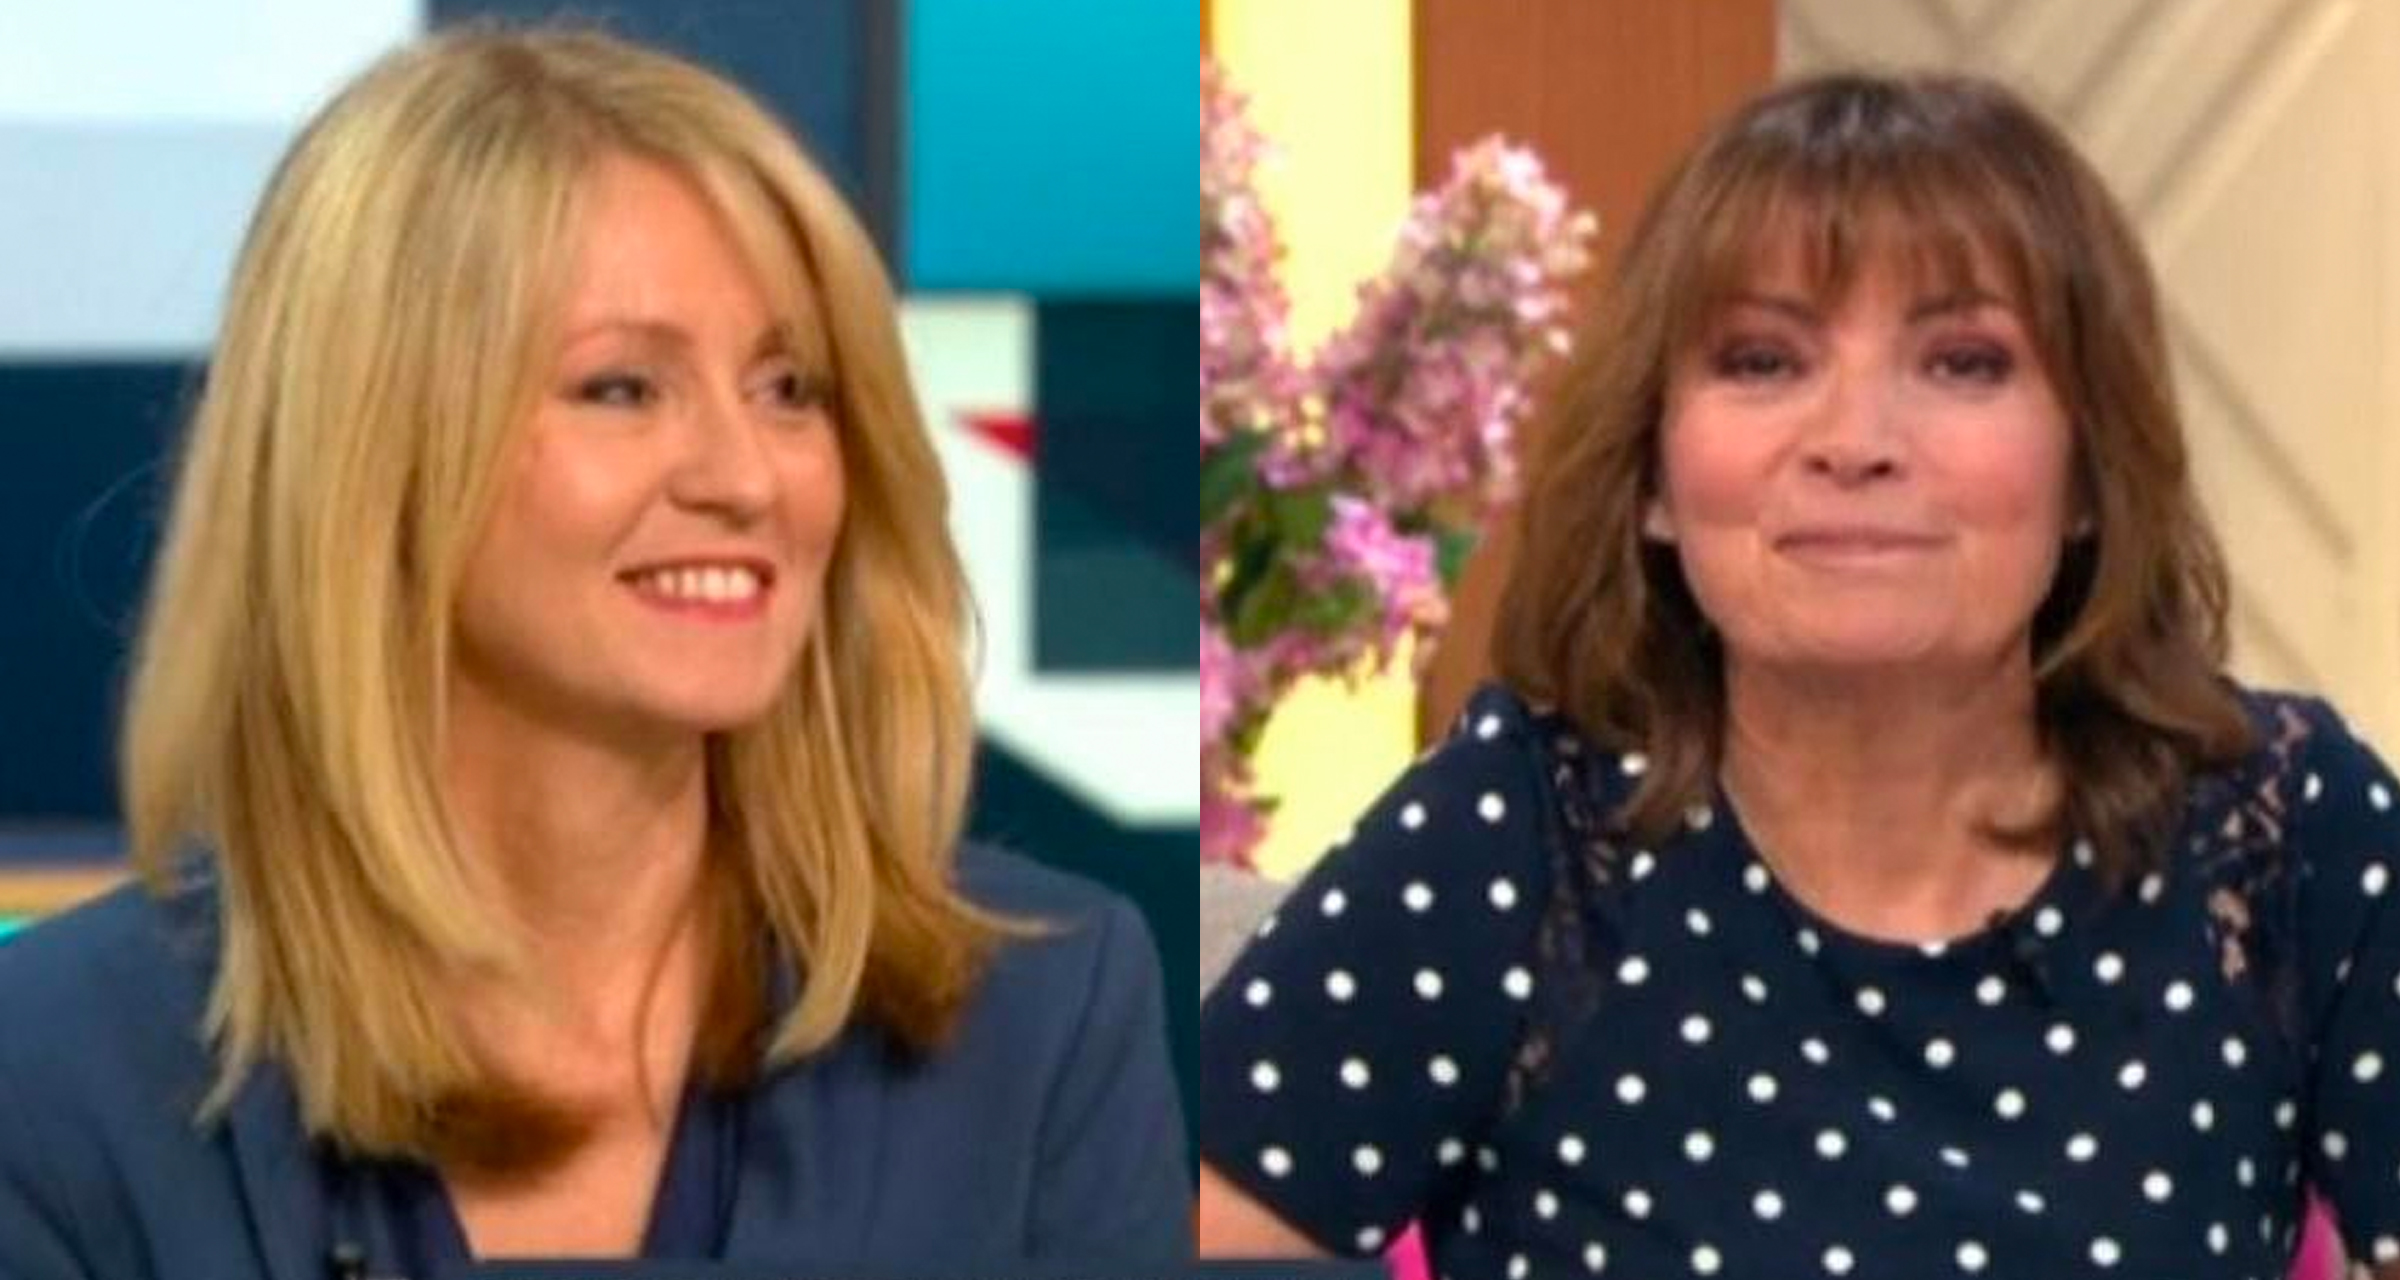 Esther McVey and Lorraine Kelly on Good Morning Britain.